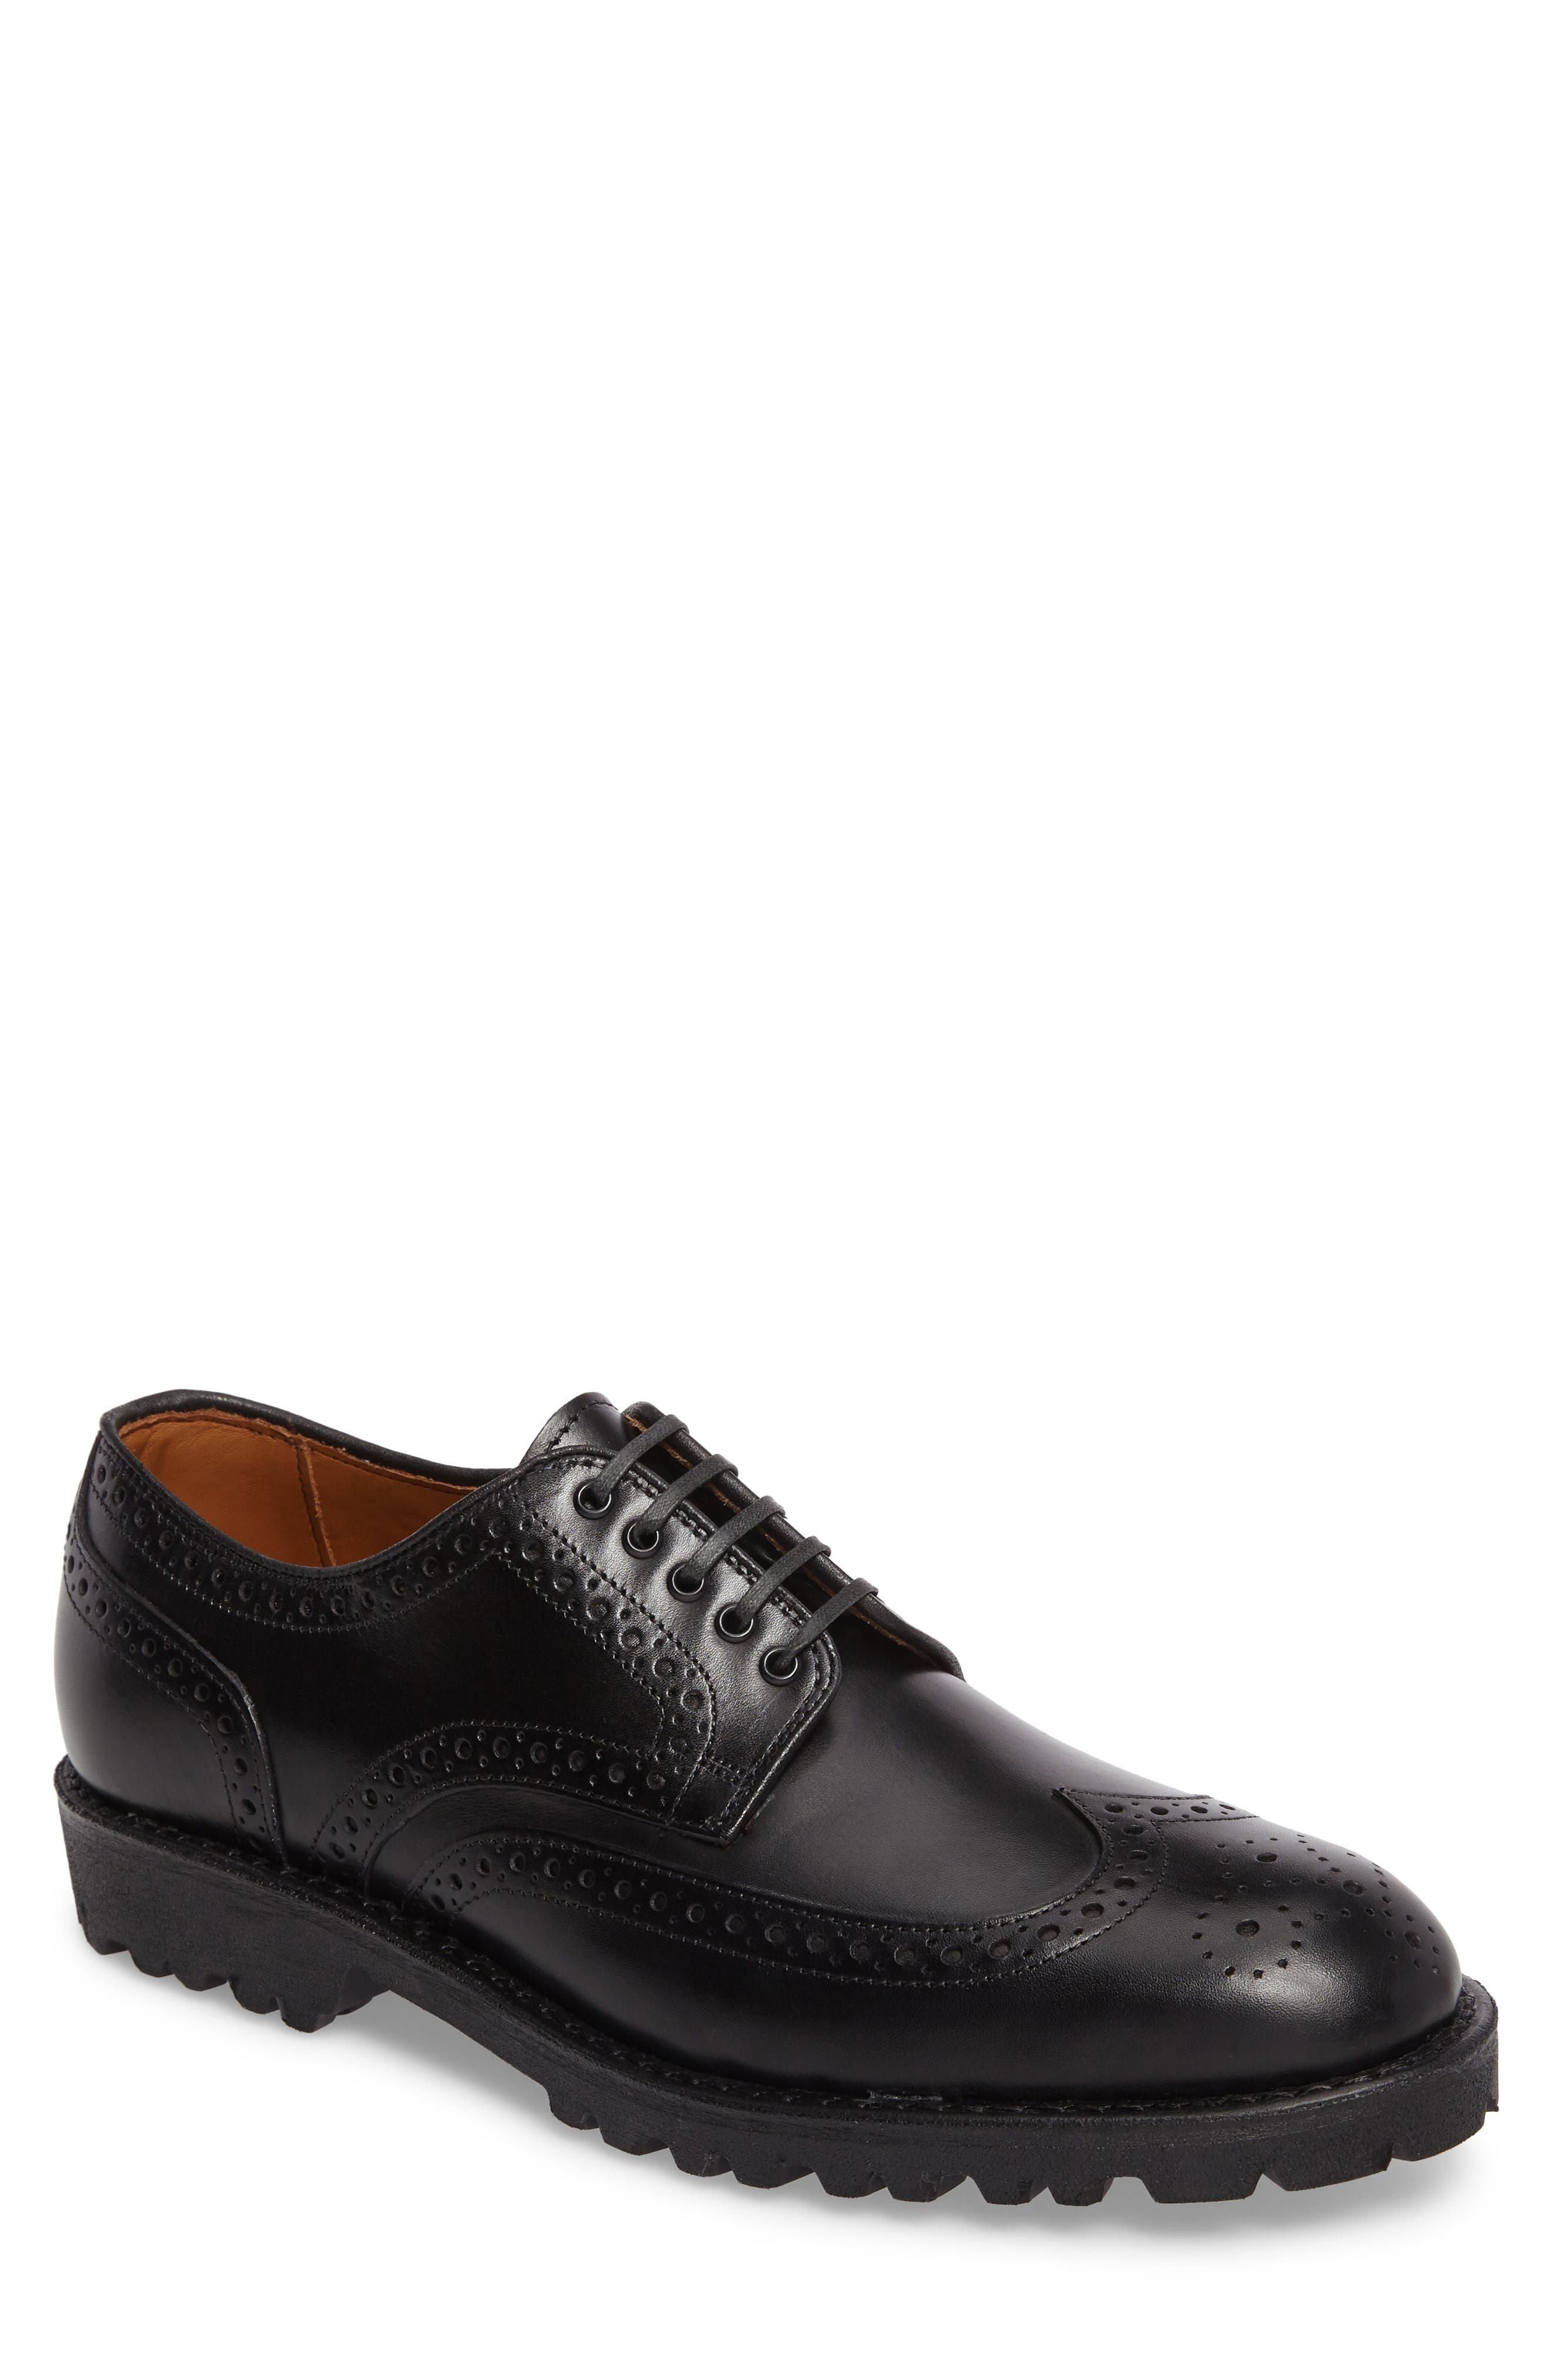 Alternate Image 1 Selected - Allen Edmonds Tate Wingtip (Men)